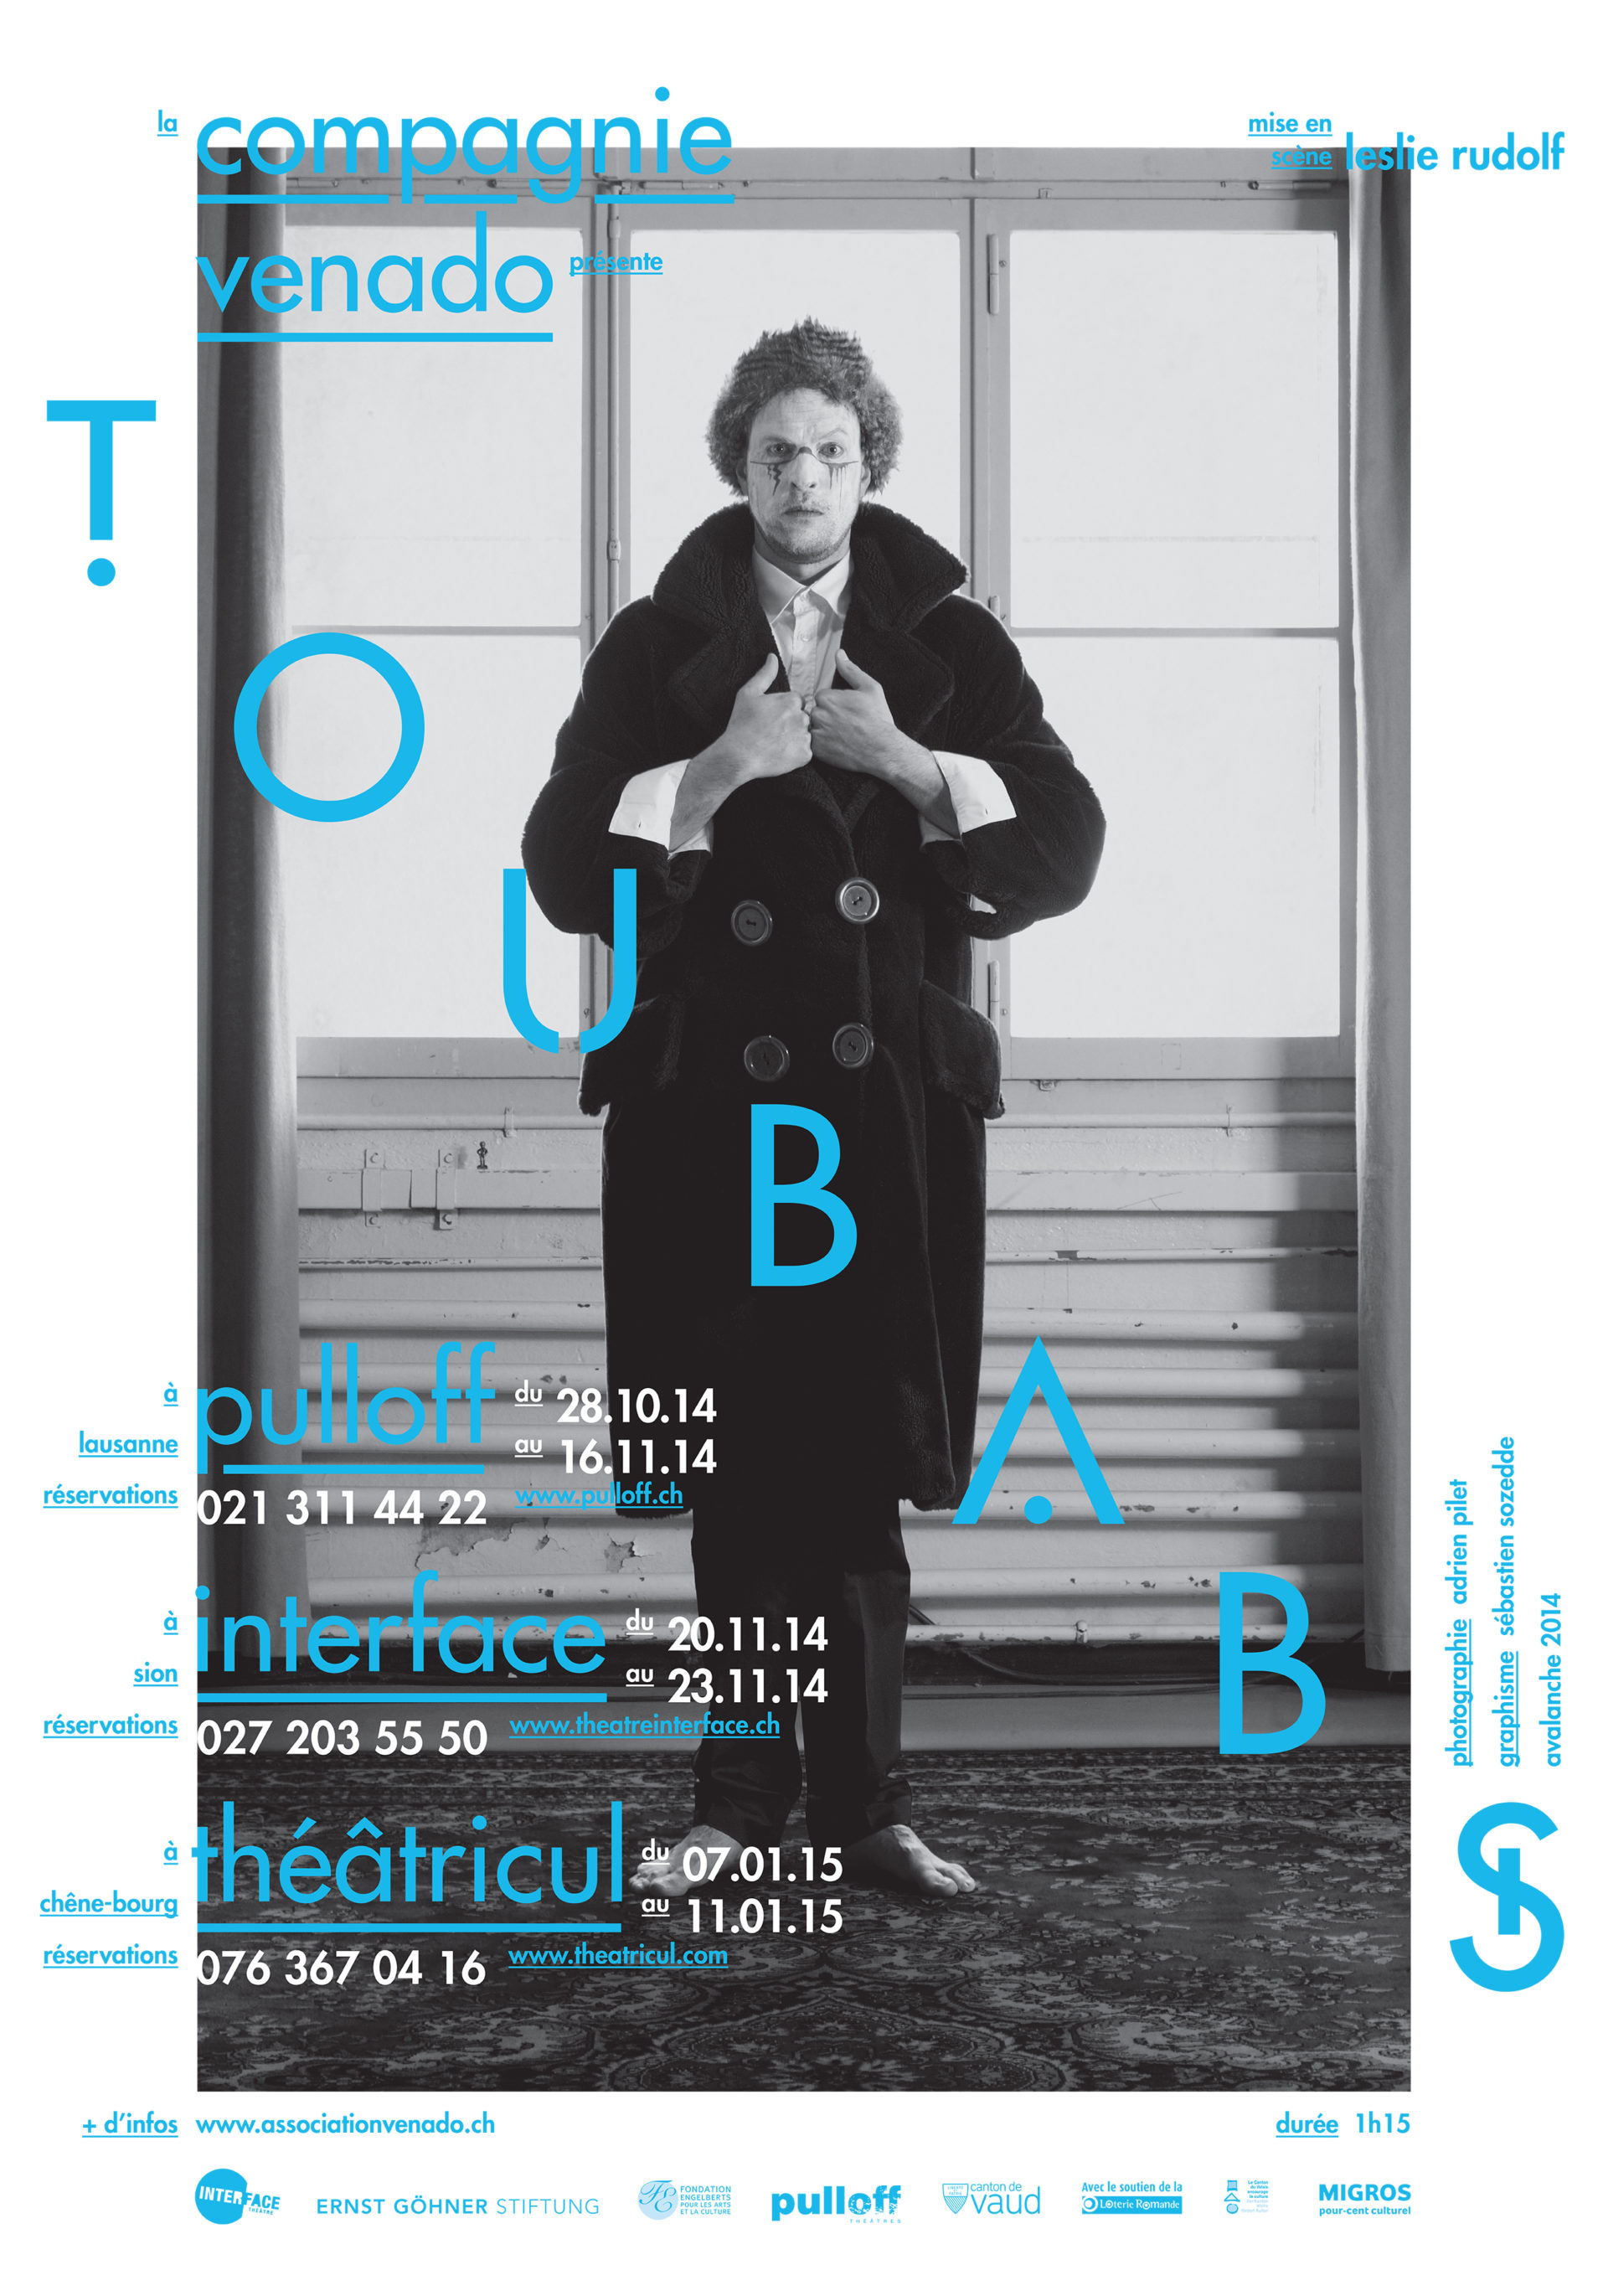 Toubabs - Avalanche